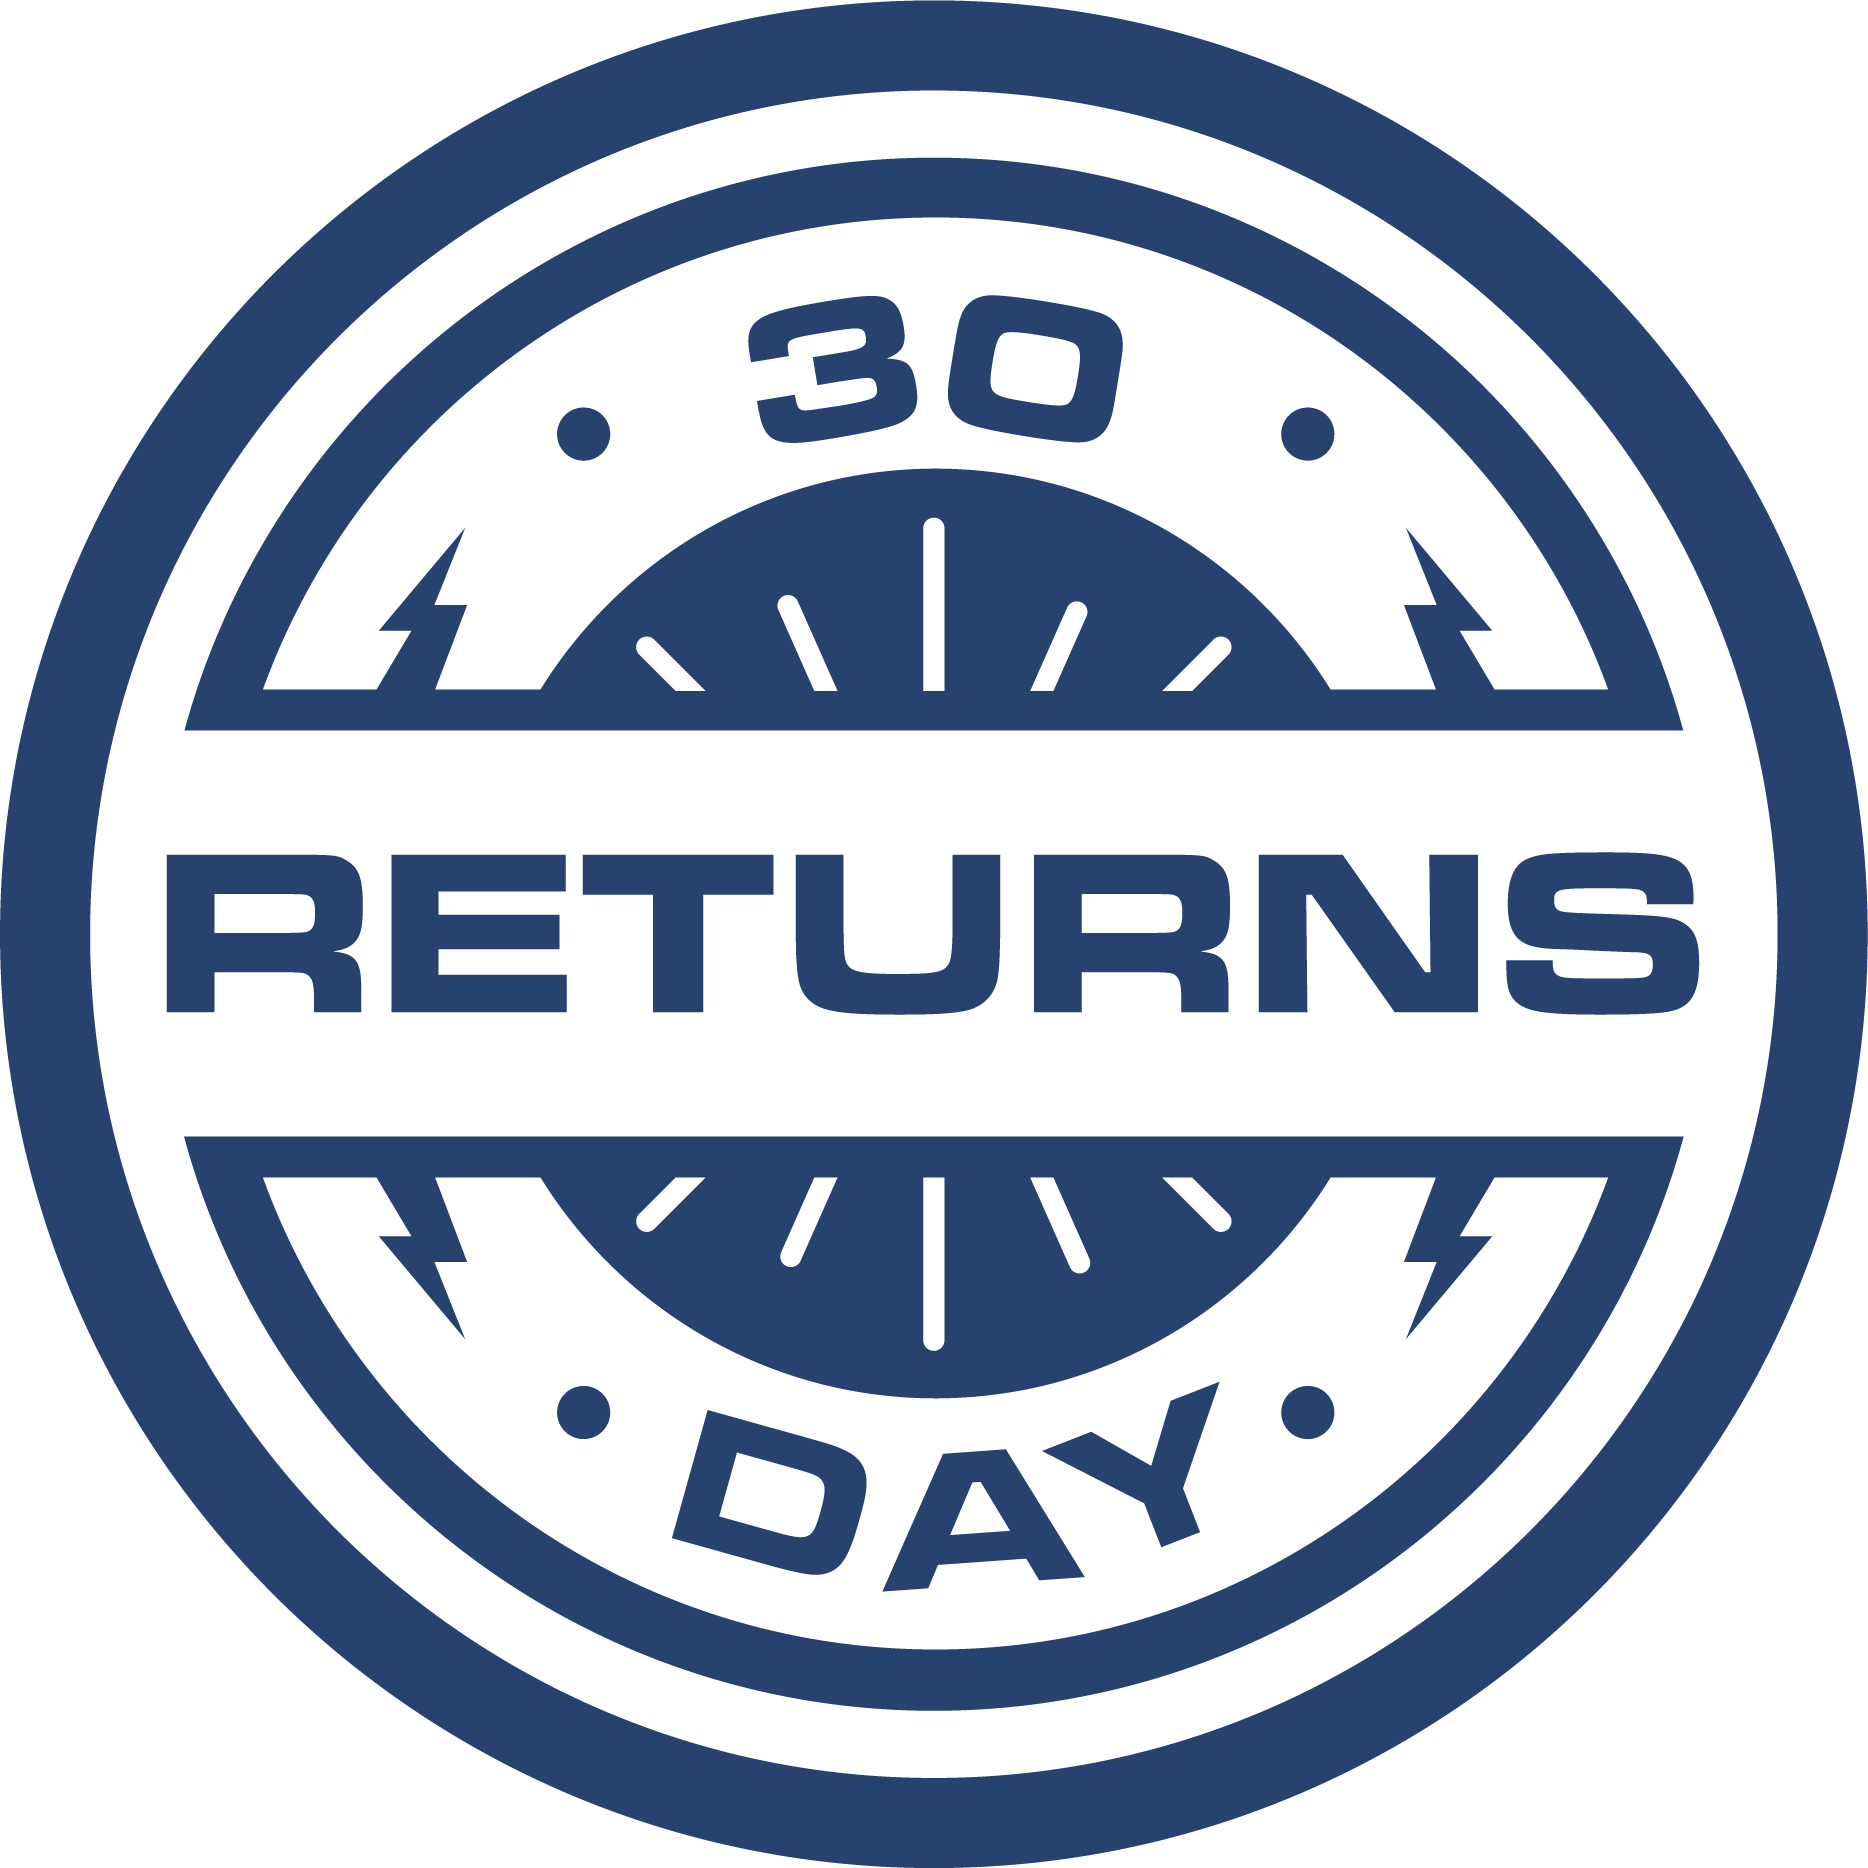 30-day-returns-icon.png